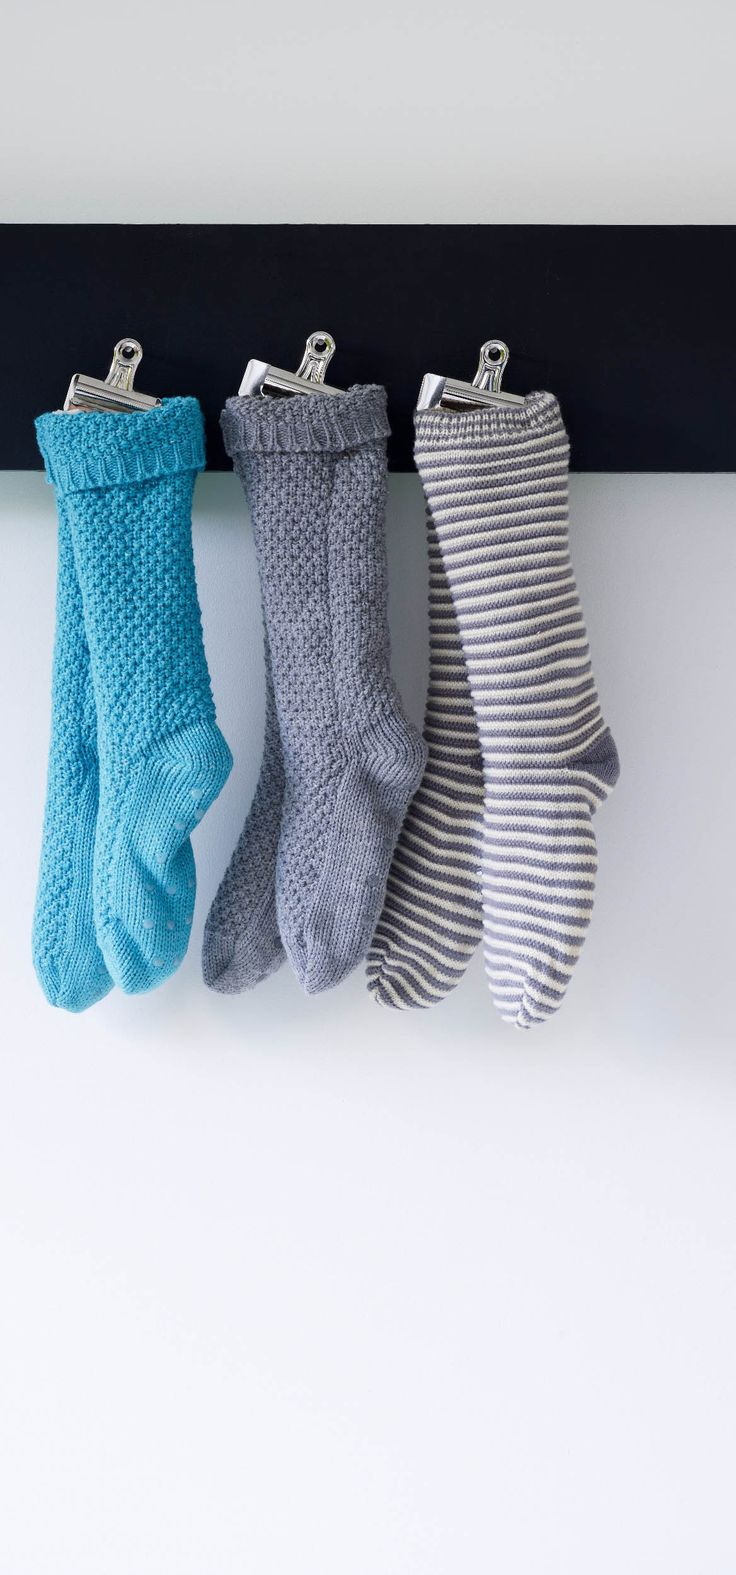 Cosy nights in call for a pair of our Striped Chunky Slipper Socks. Make good secret Santa gifts too!